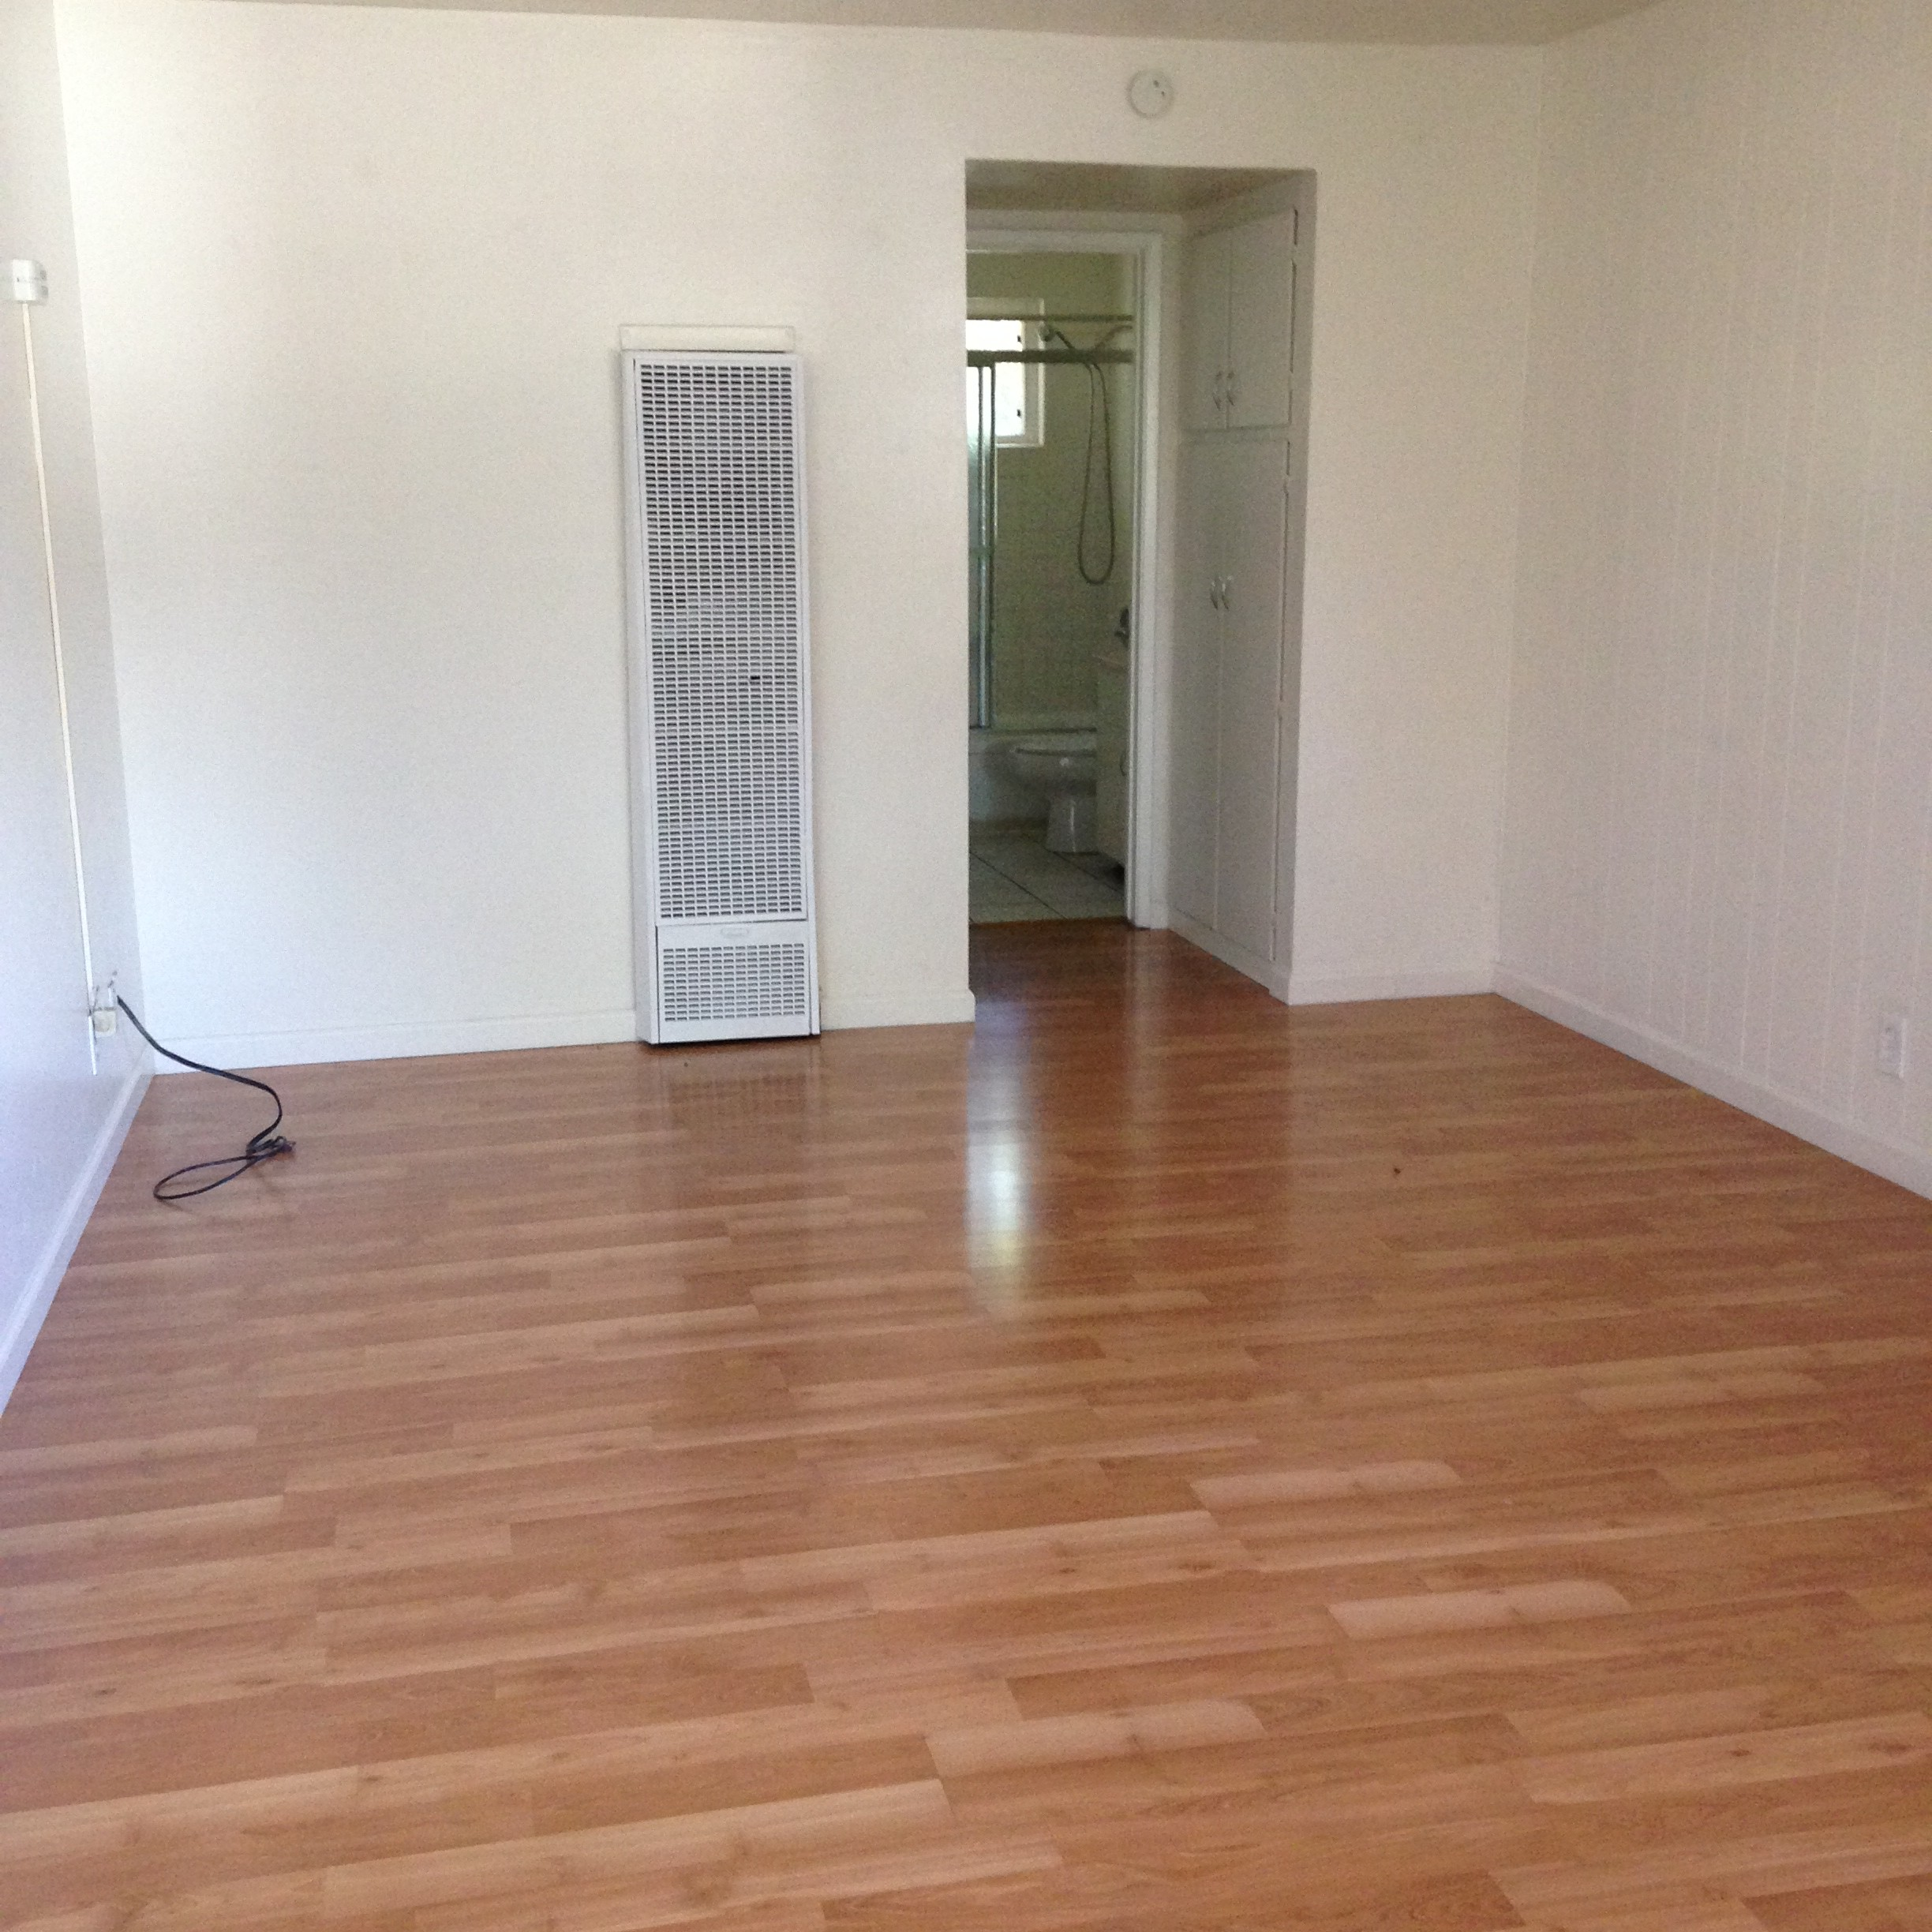 Looking To Rent Apartment: A Look At The Cheapest Apartment Rentals In San Jose